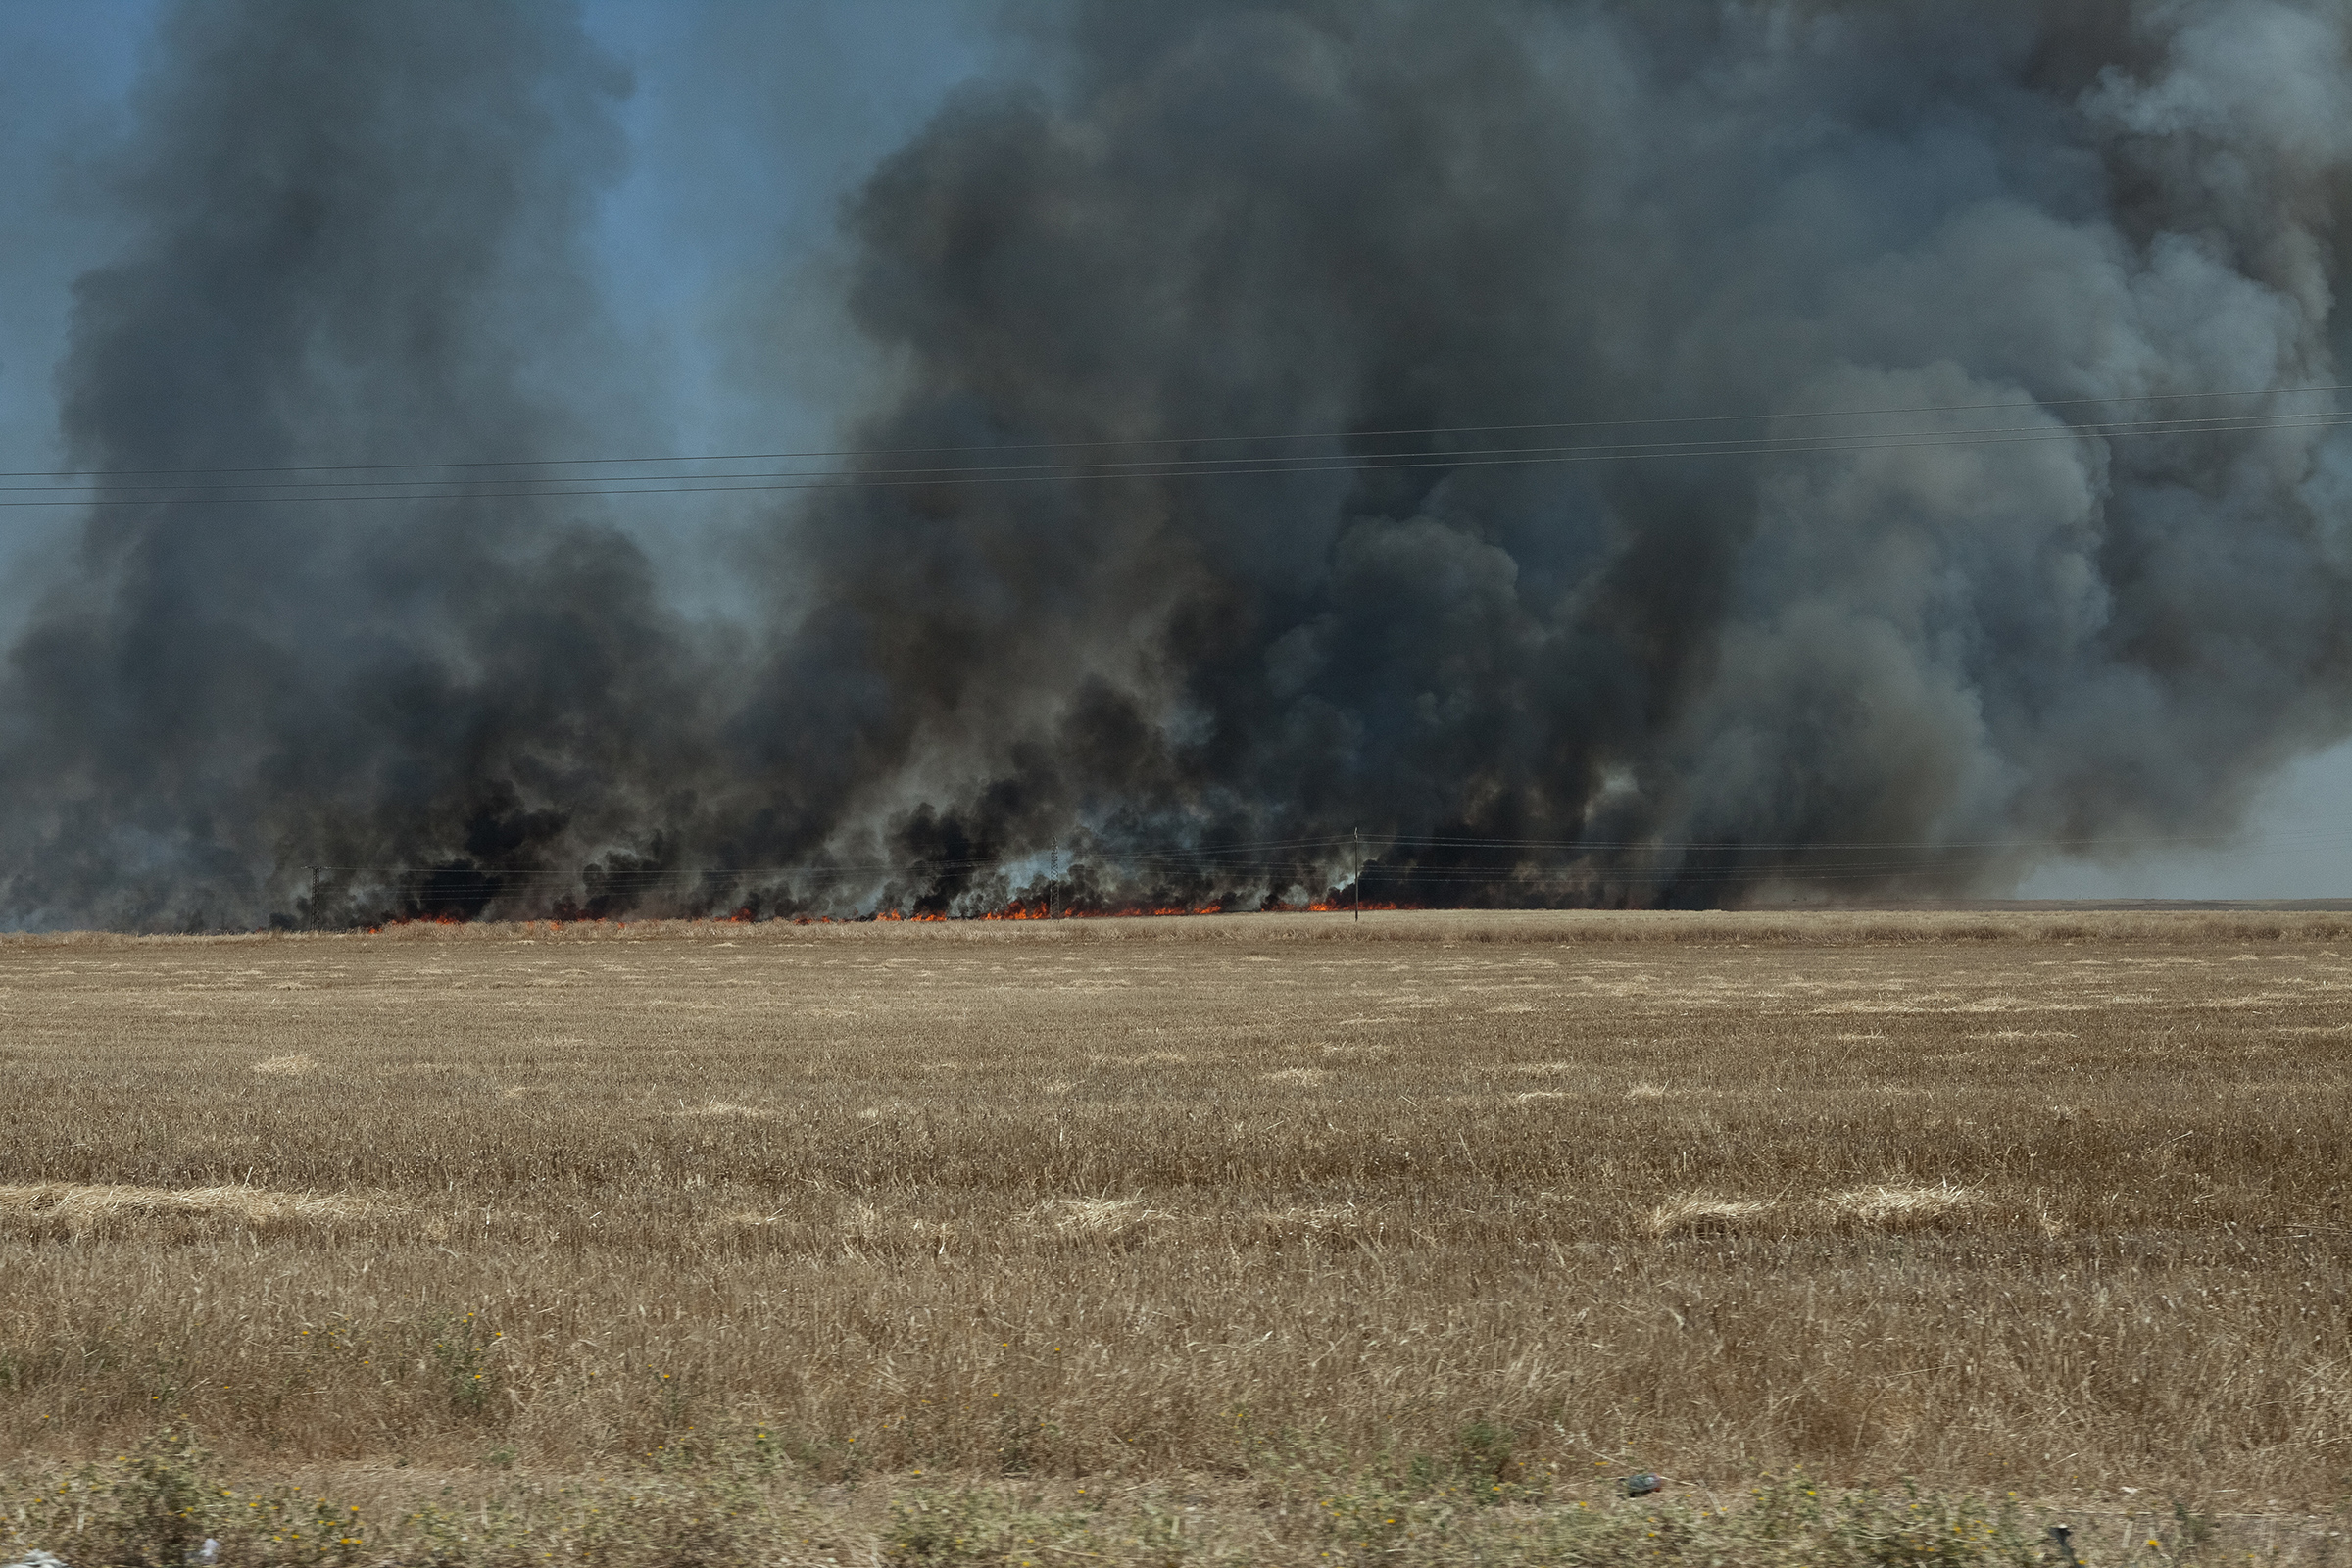 A field burns on the road between Al-Maabadah and Qamishli in June 2019. The dominating rumor among the Kurdish population was the fires were set by ISIS sleeper cells.